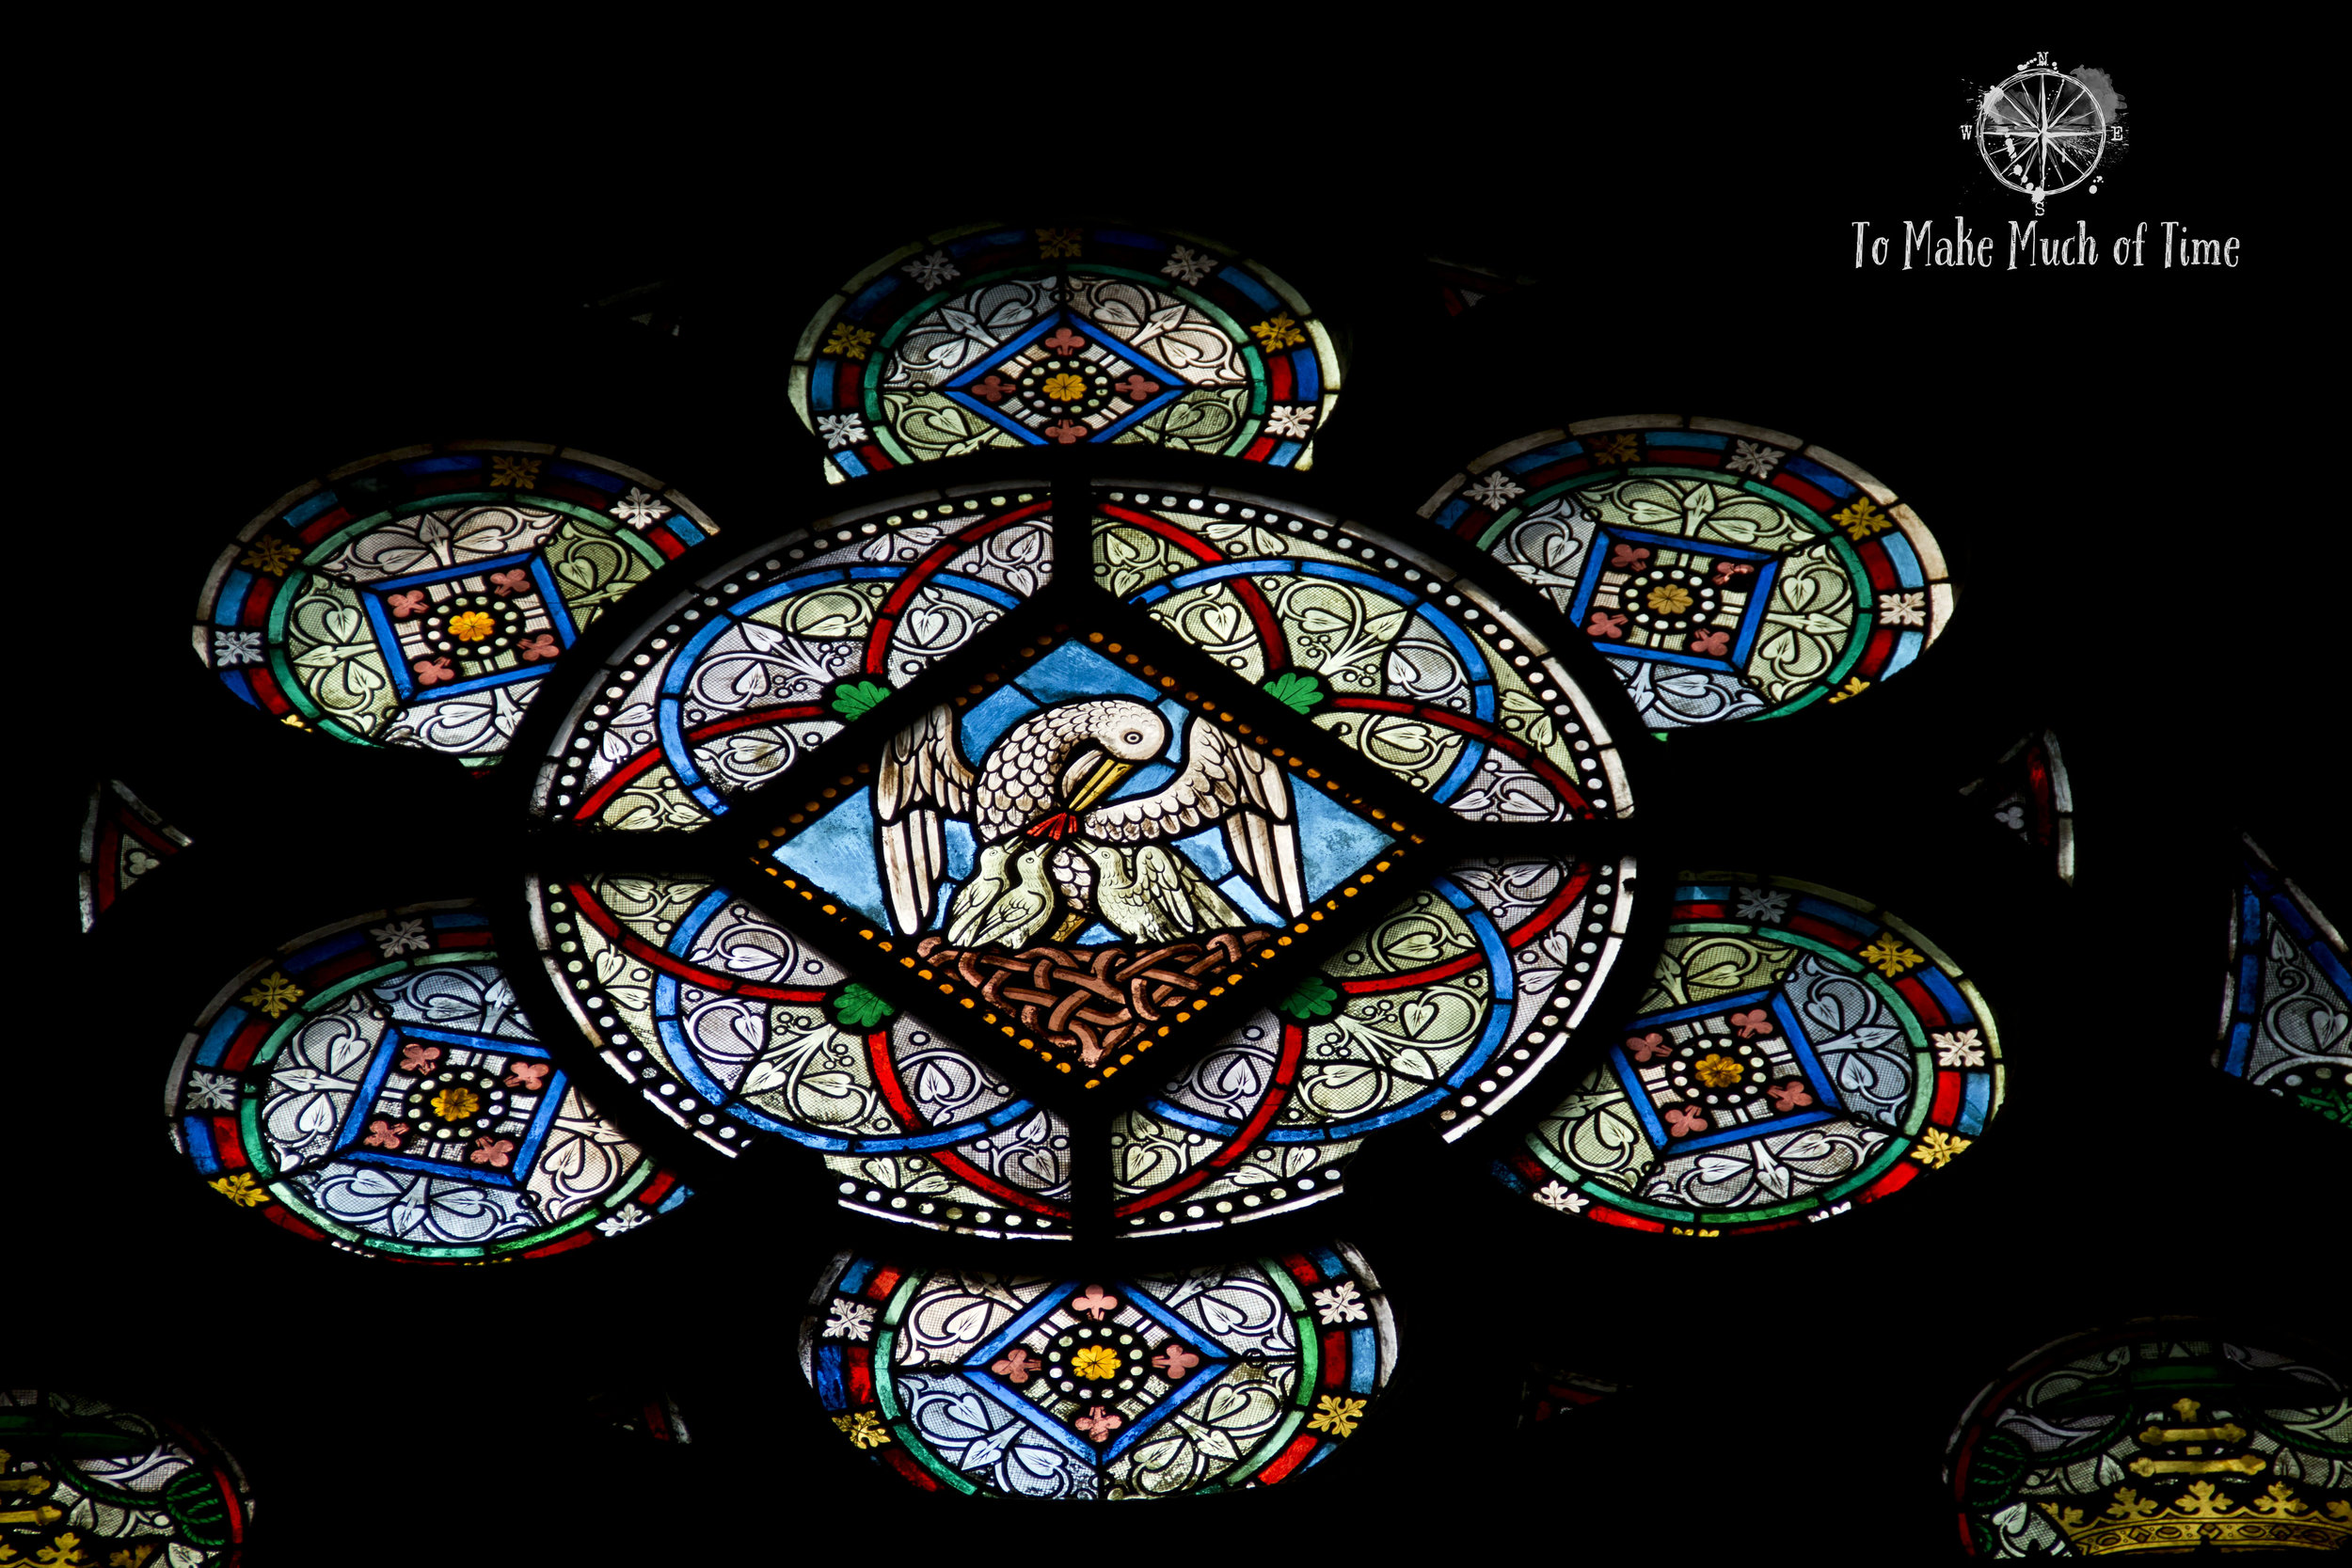 The details in this stained glass window are amazing.